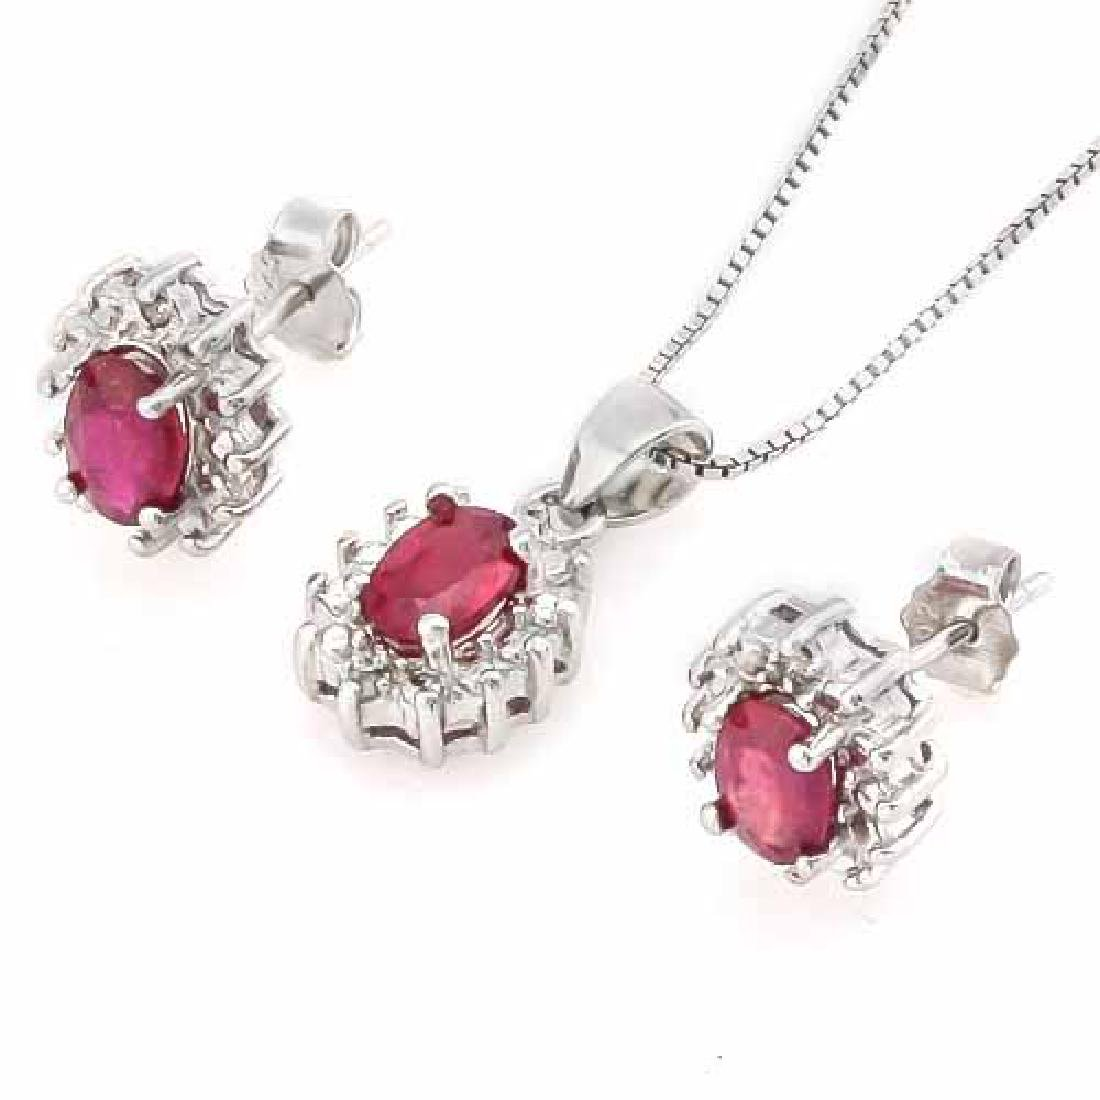 2 CARAT AFRICAN RUBY & DIAMOND 925 STERLING SILVER SET